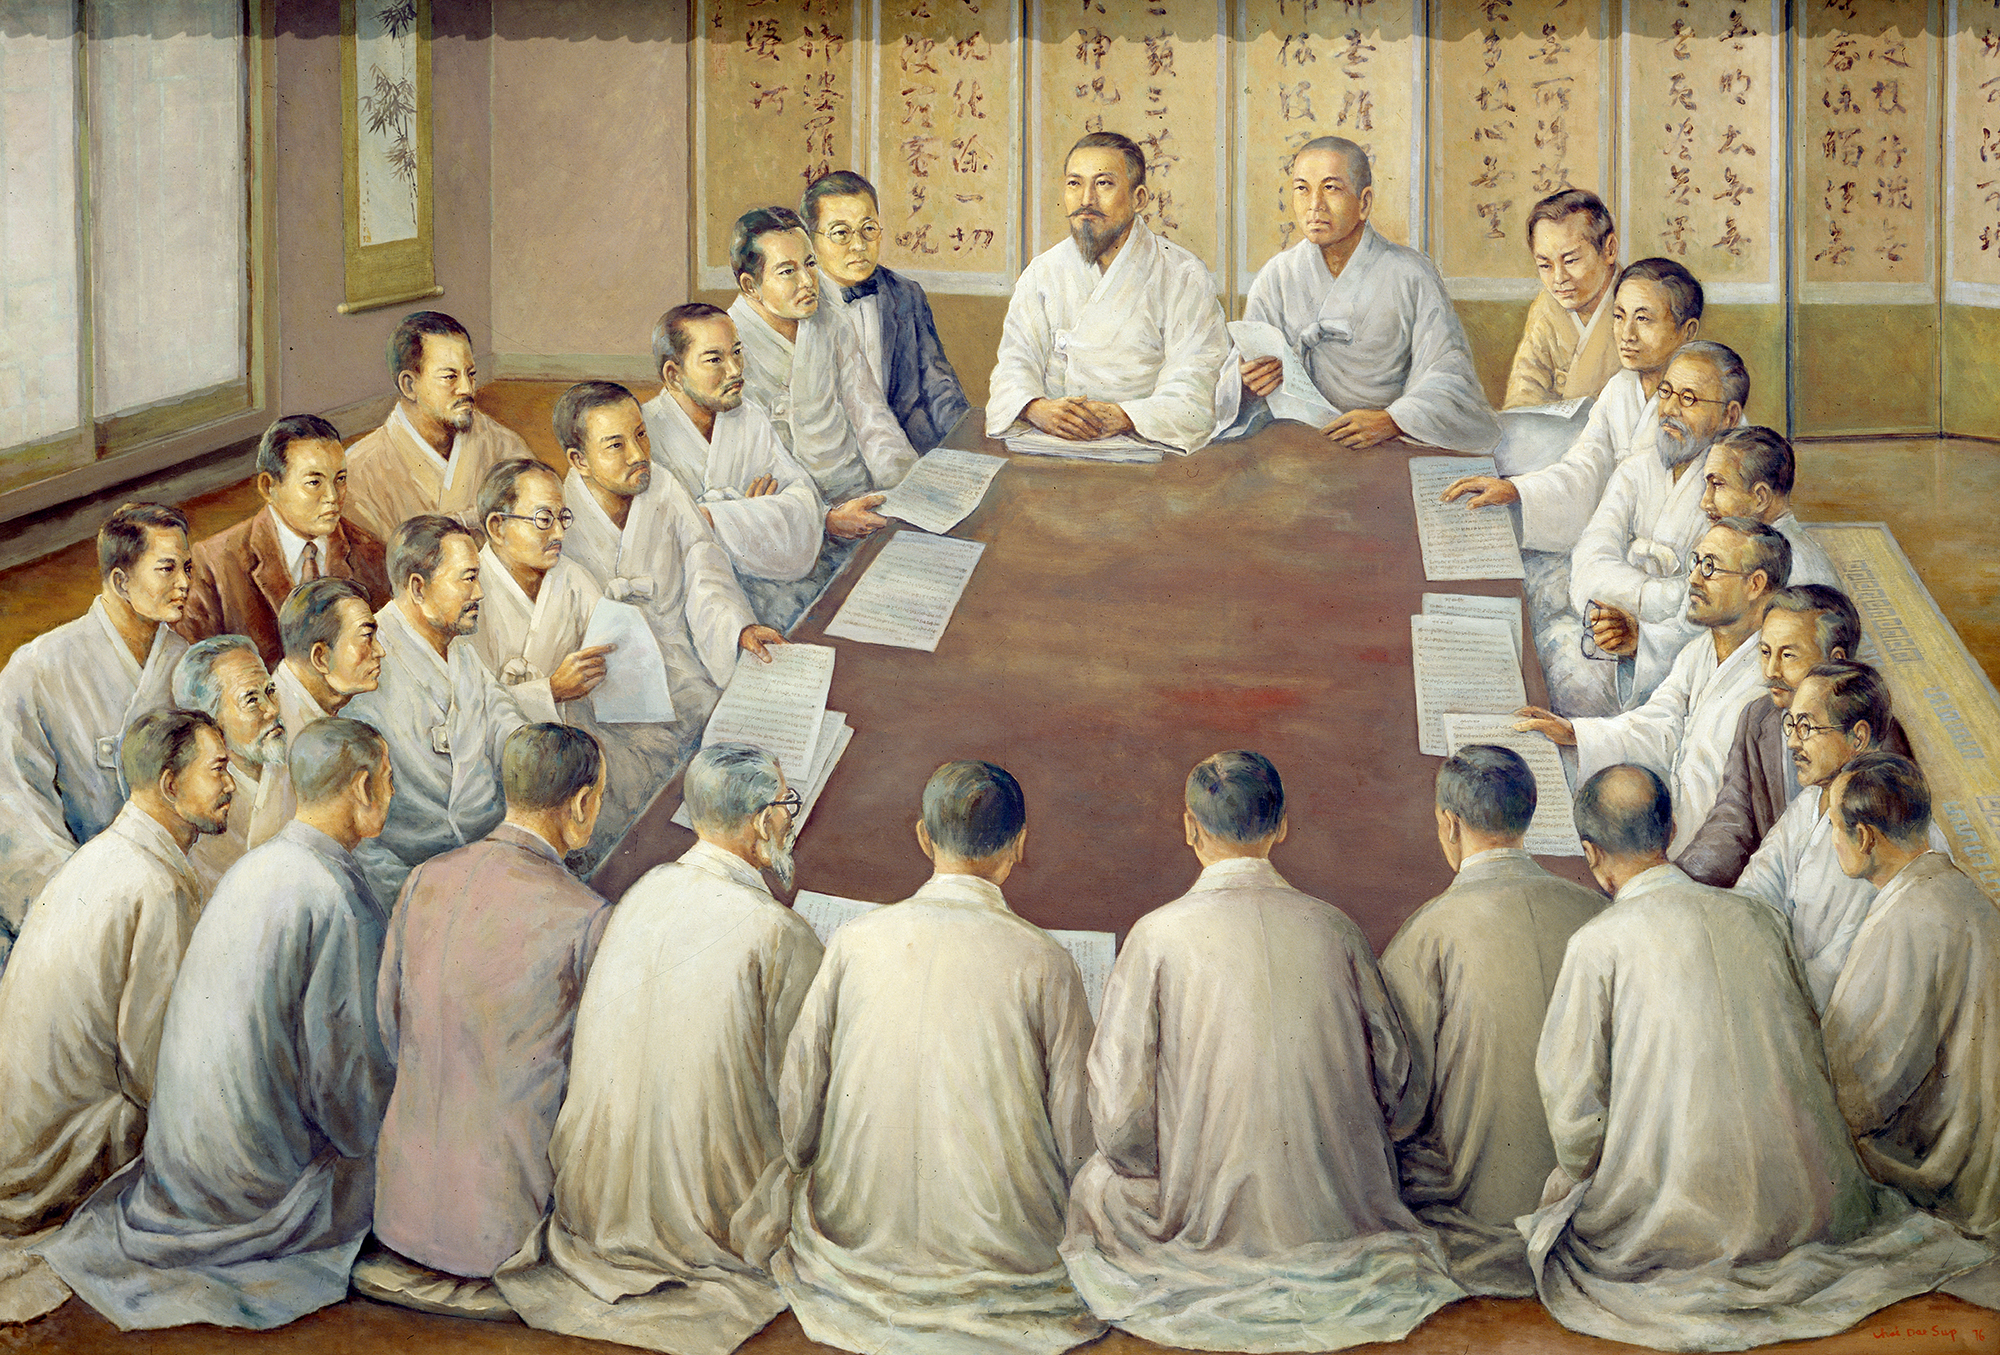 Choi Dae-sub.  The Pictures of the Declaration of Independence by National Representatives.    Korea, 1976. Ink and color on mulberry paper. 114.5 x 77.6 in.